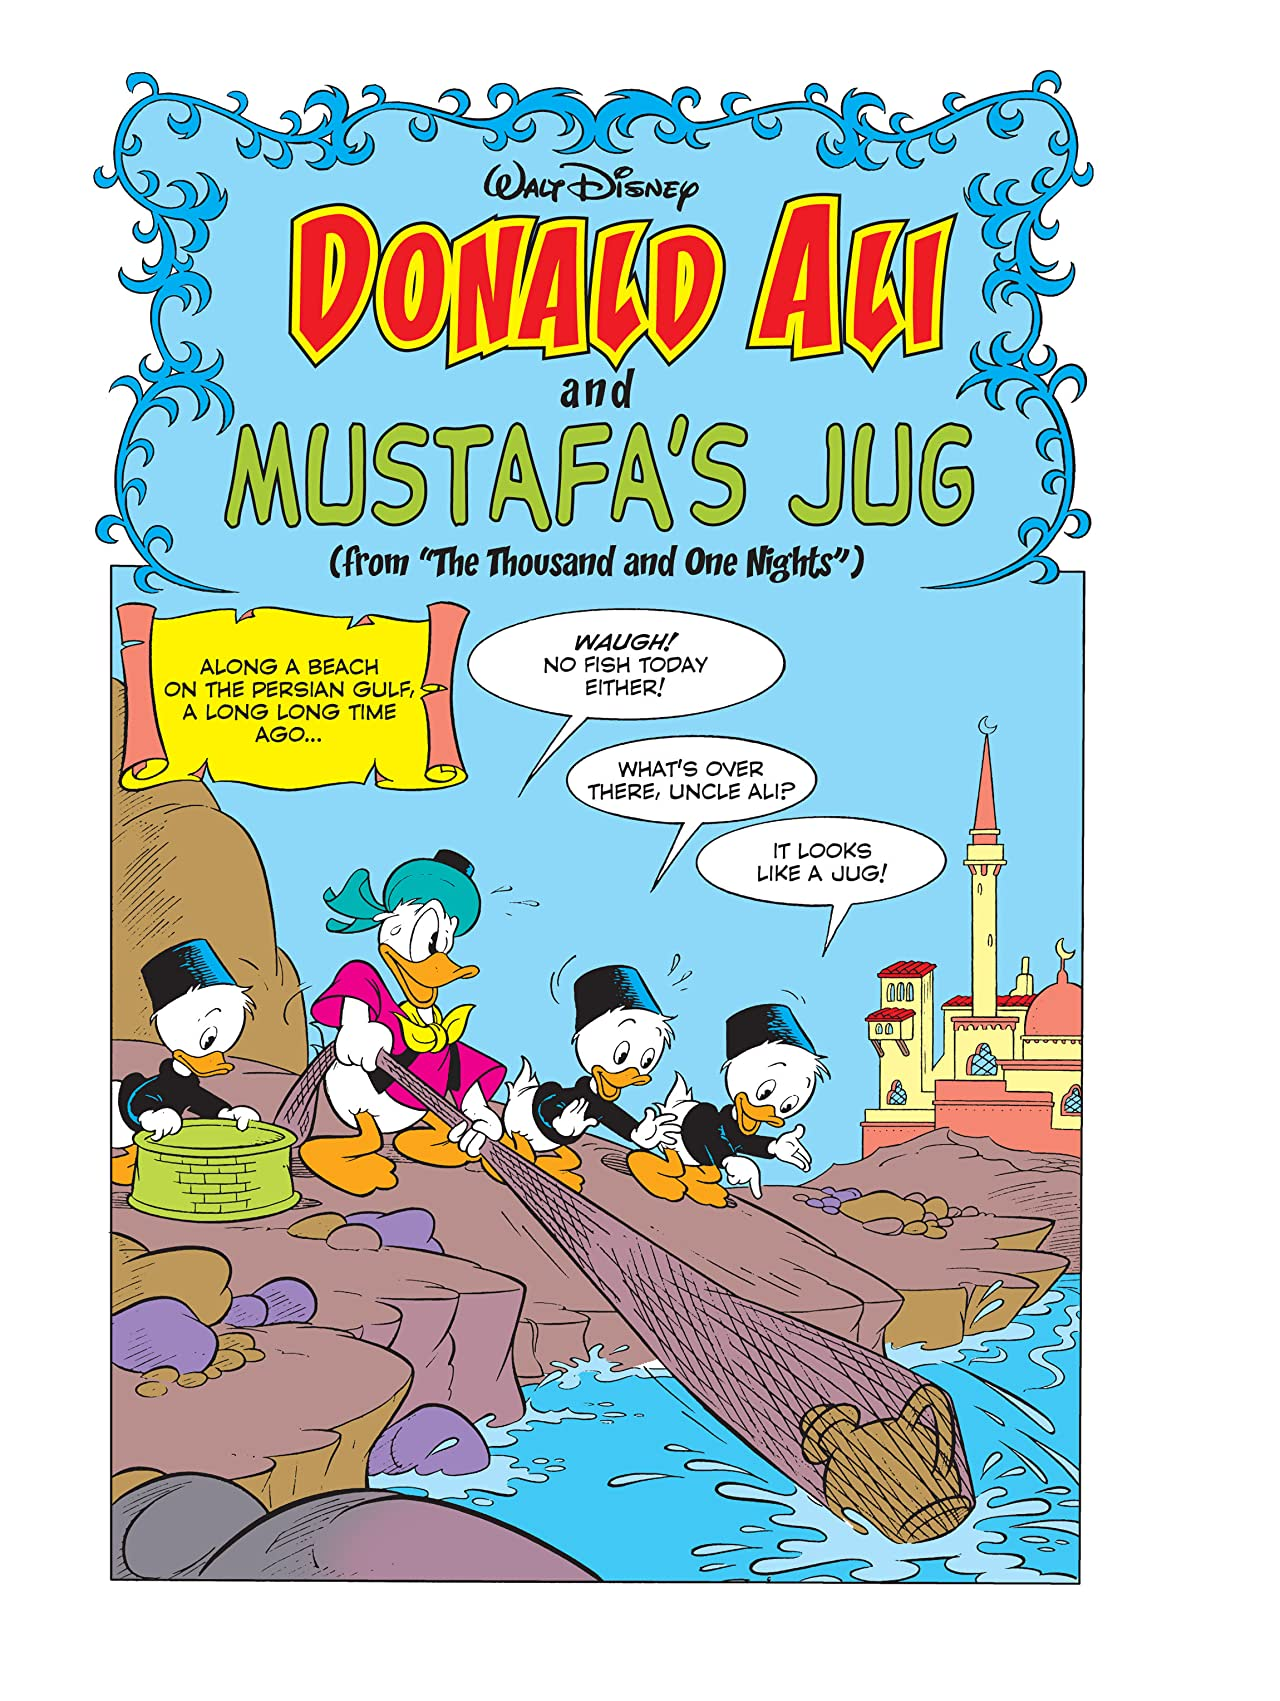 Donald-Ali and Mustafa's Jug